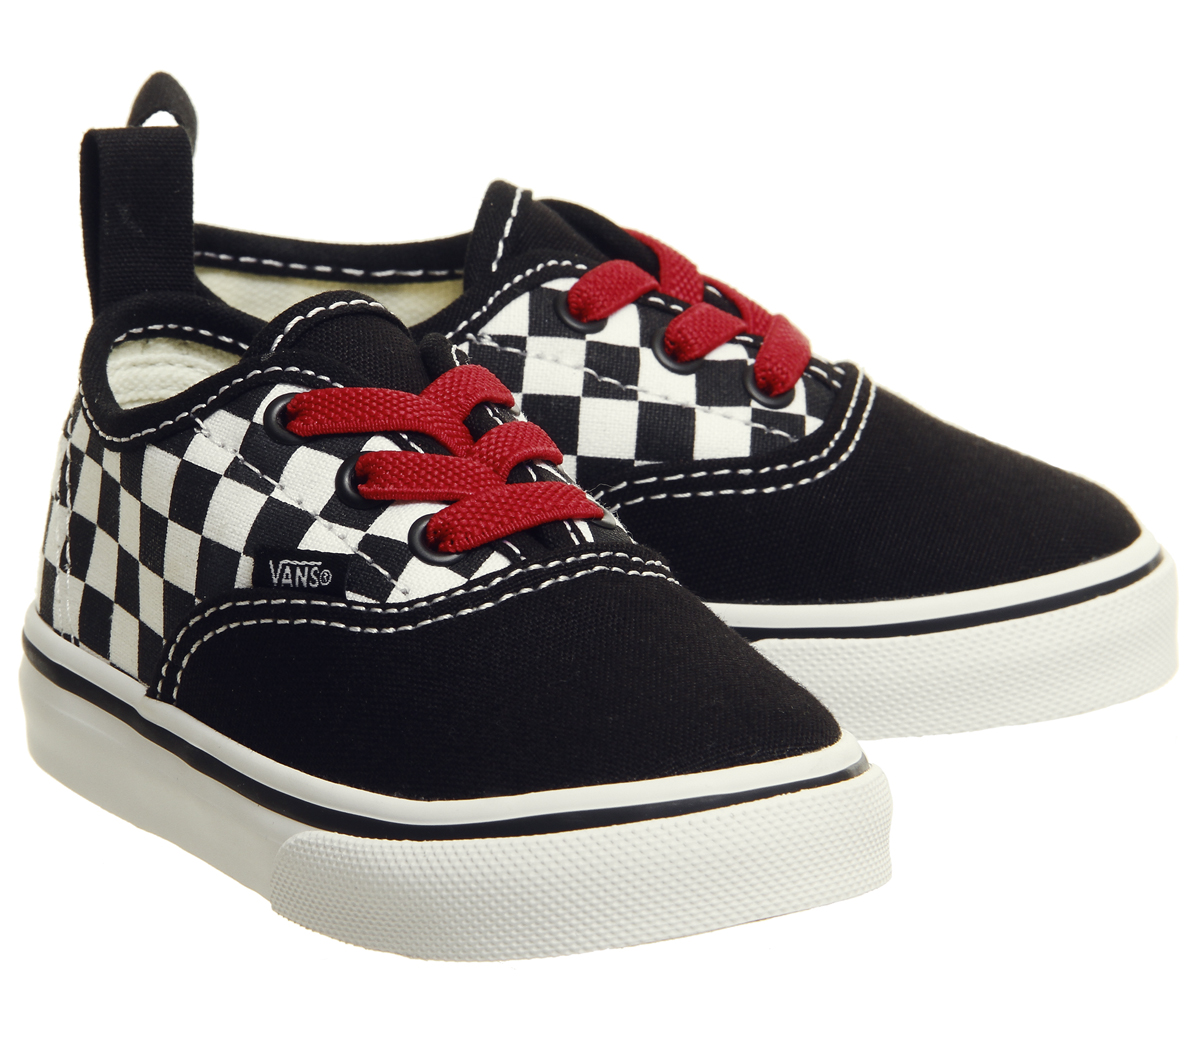 780bca98dd5e Kids Vans Authentic Toddlers Trainers Black Red True White ...